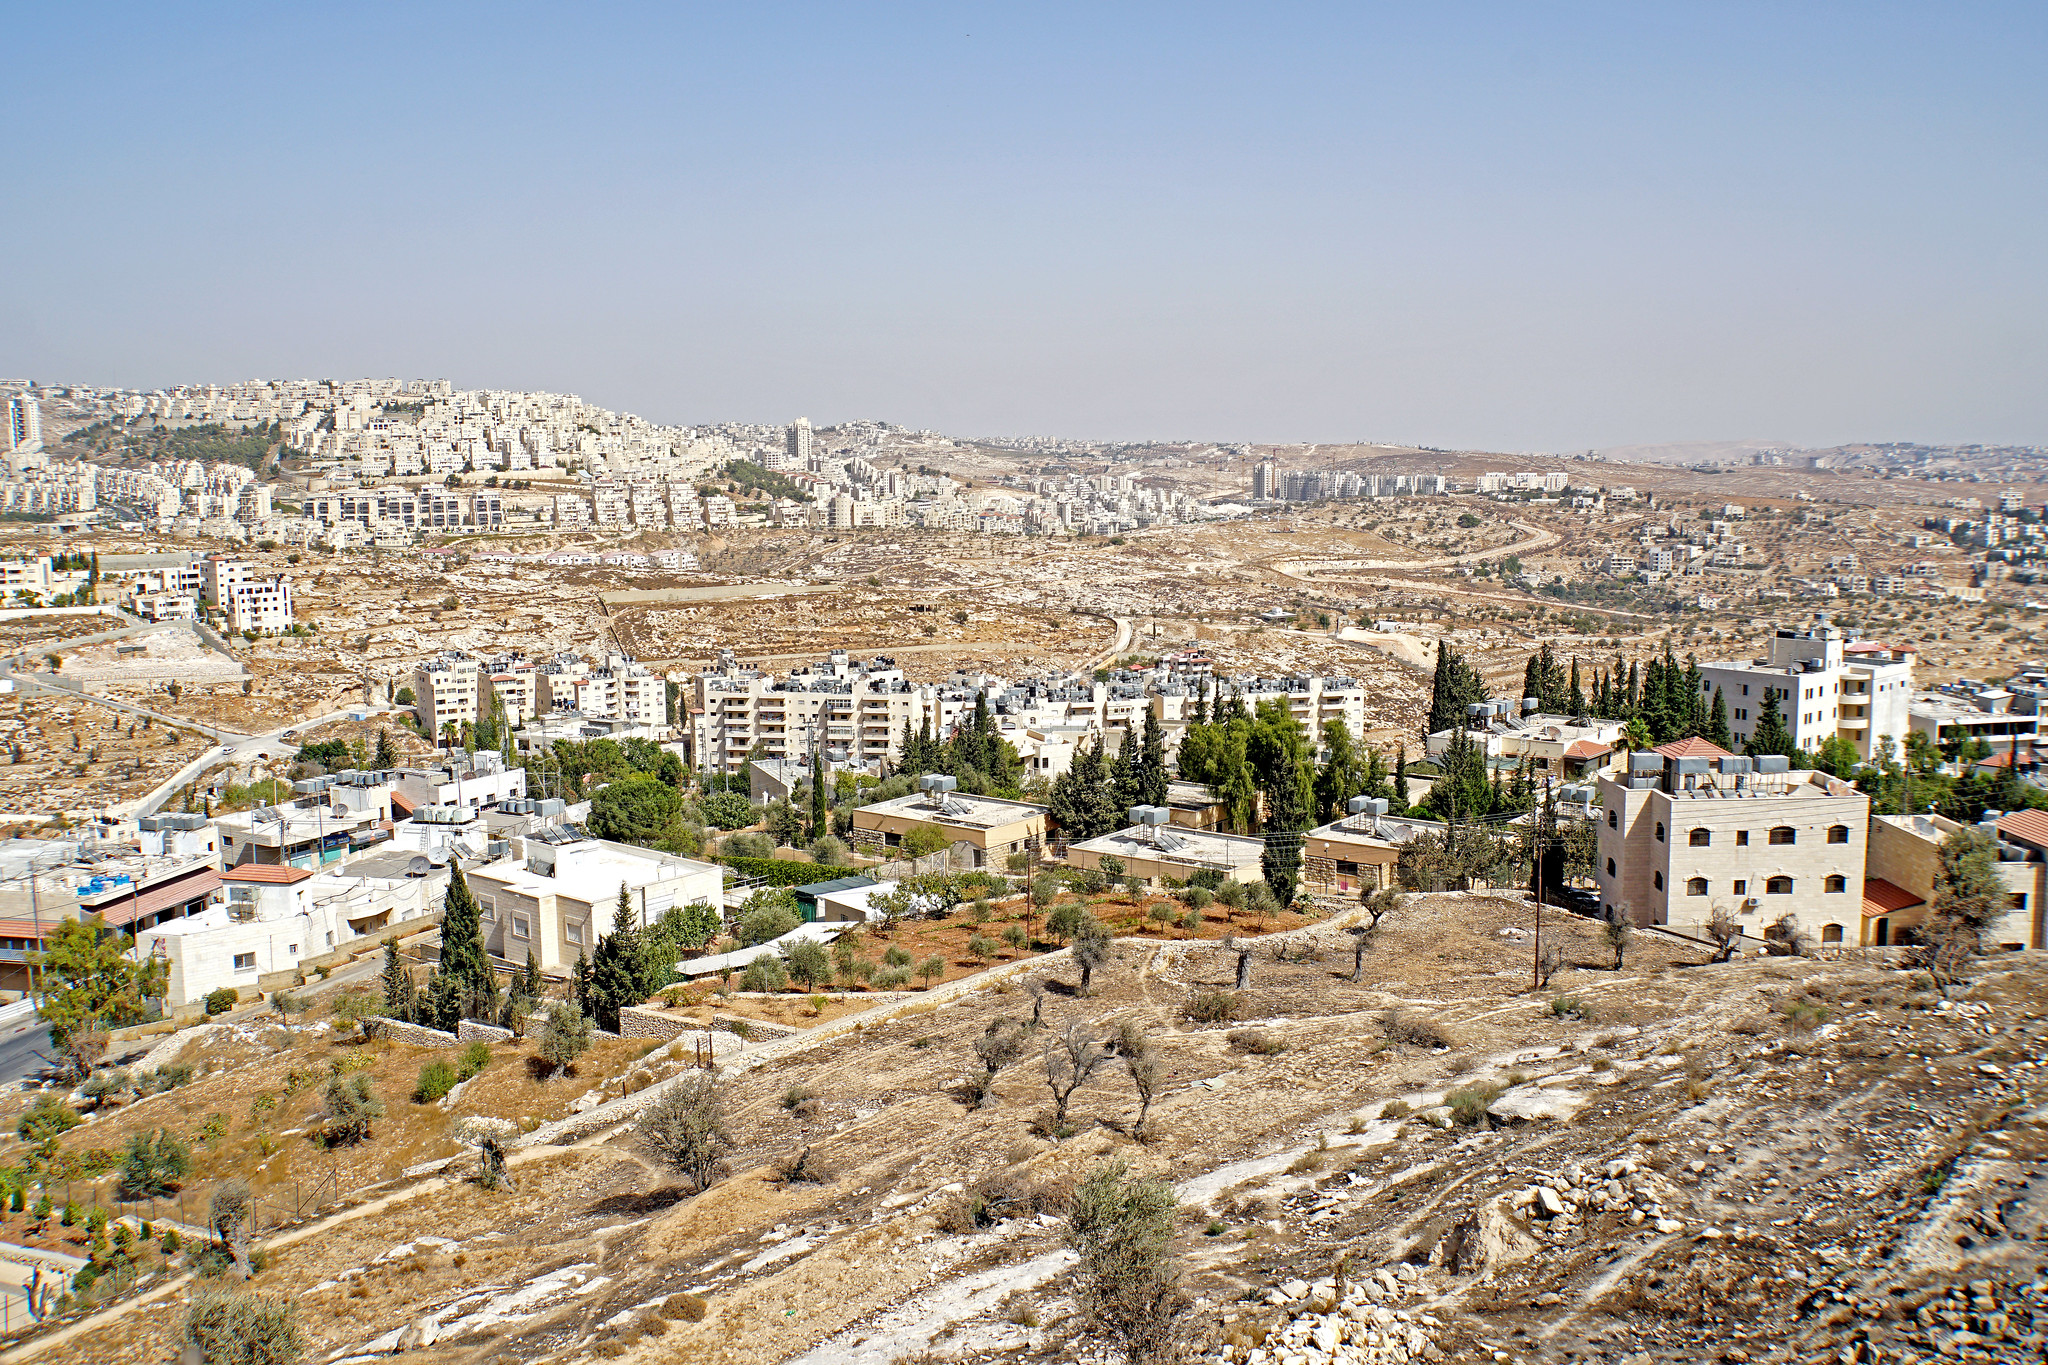 Aerial view of the city of Bethlehem